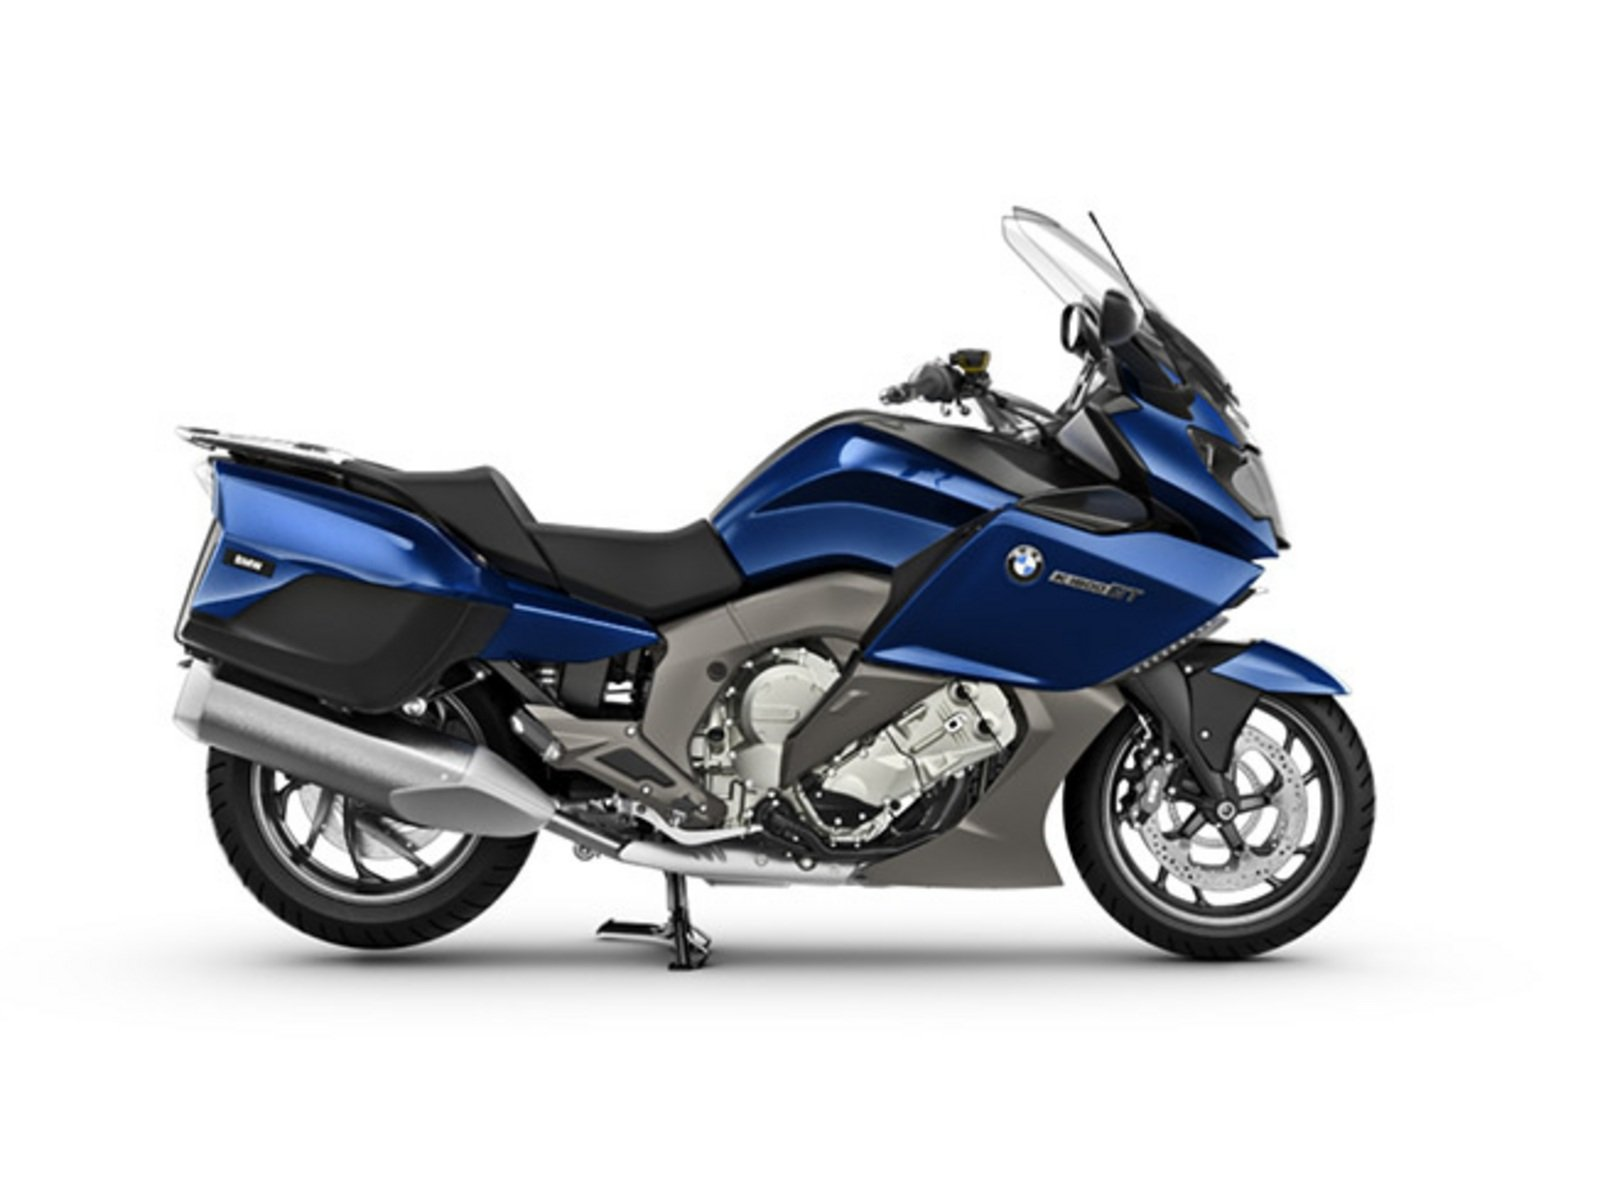 Bmw K Series Reviews Specs Prices Photos And Videos Top Speed Suzuki King Quad 750 Fuel Filter 2014 1600 Gt